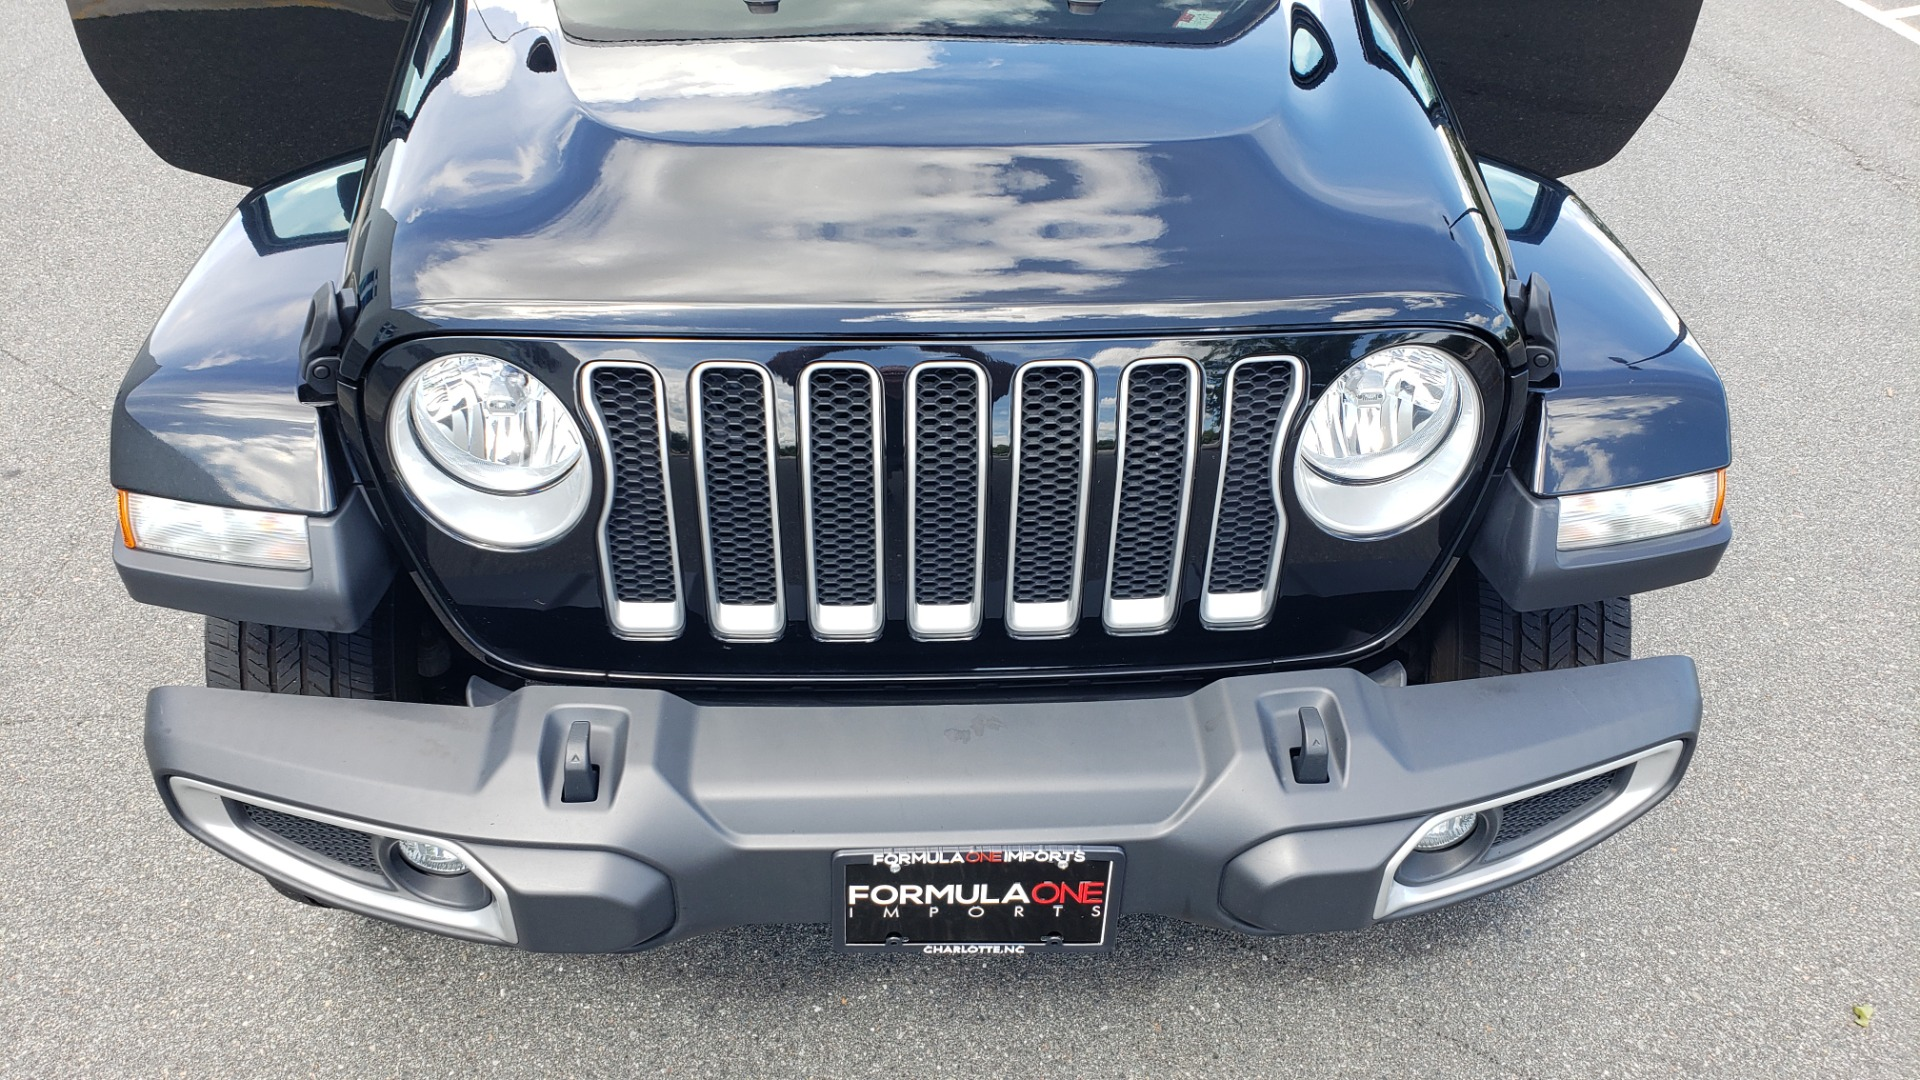 Used 2018 Jeep WRANGLER UNLIMITED SAHARA / 3.6L V6 / 6-SPD MAN / ALPINE / NAV / HTD STS / REARVIEW for sale $43,999 at Formula Imports in Charlotte NC 28227 36